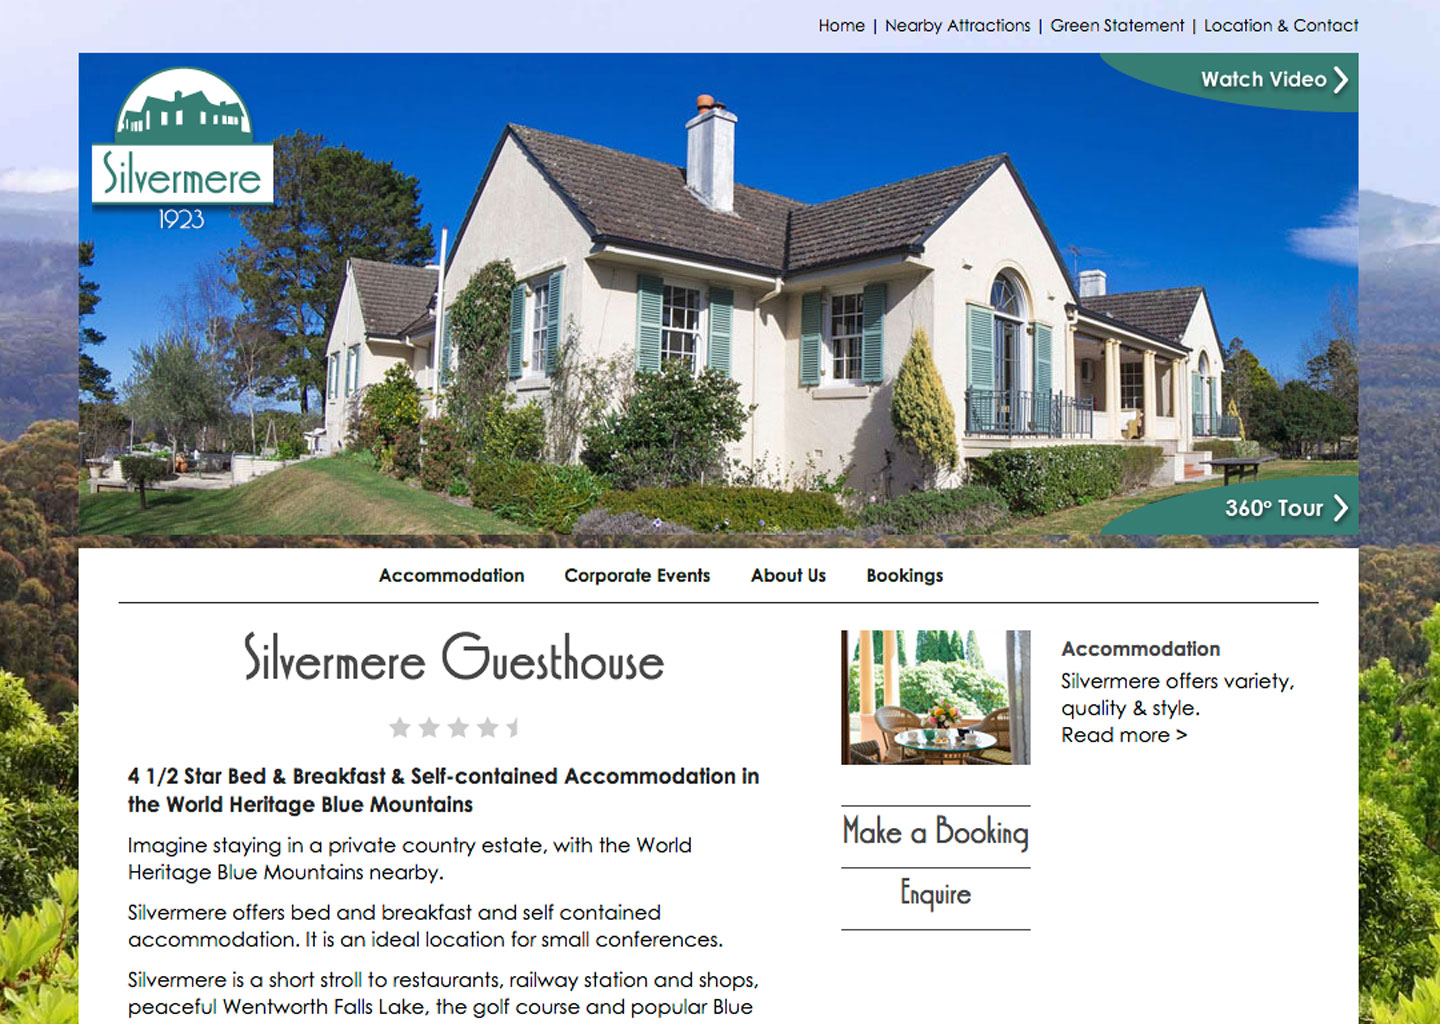 Silvermere Guesthouse website